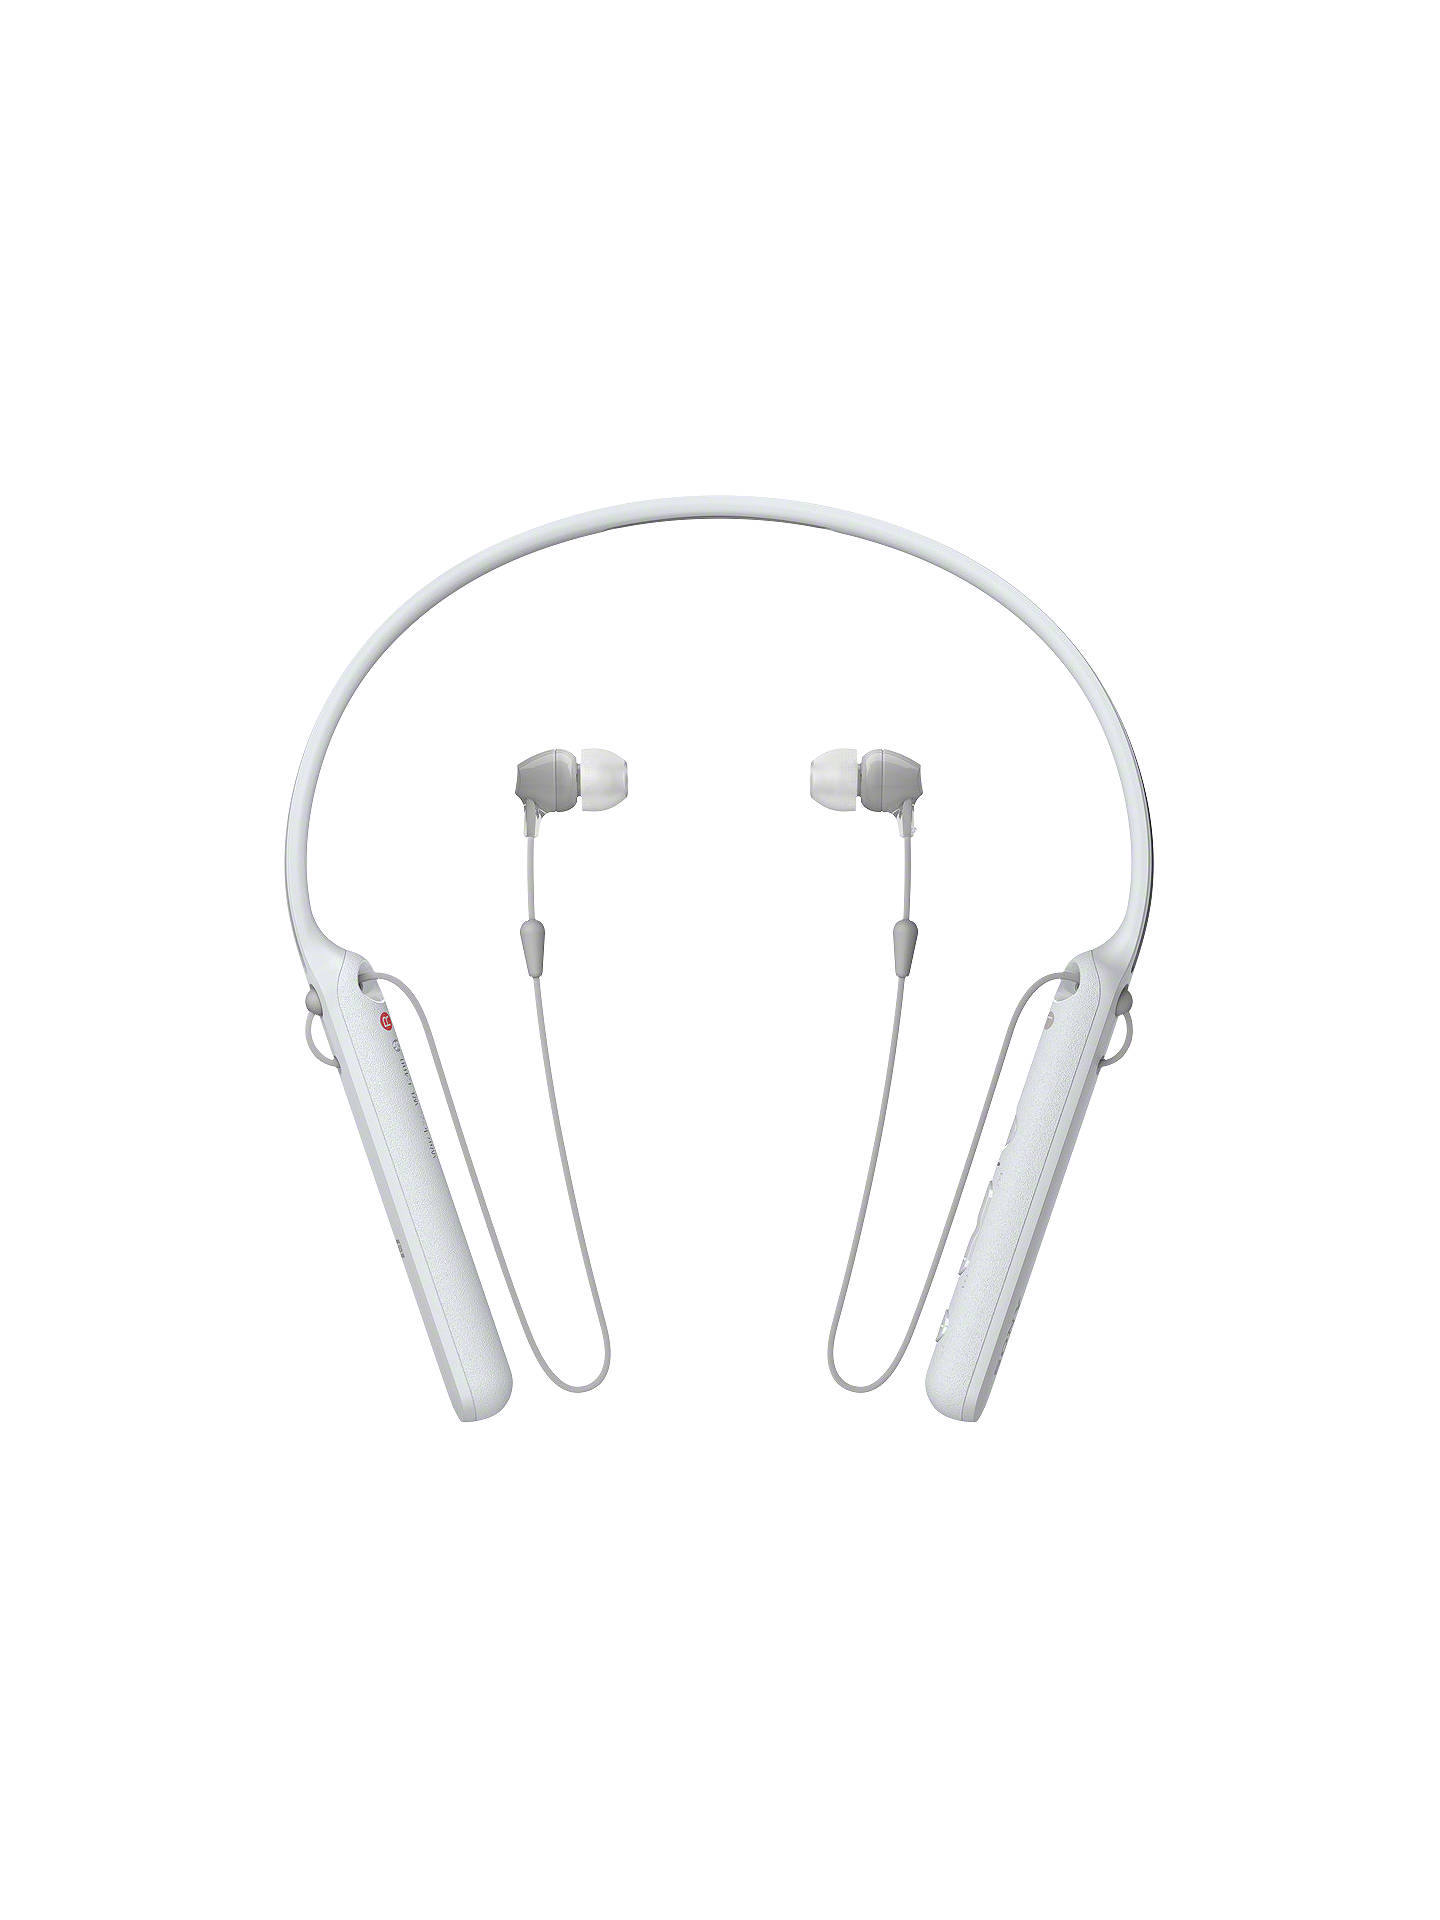 Buy Sony WI-C400 Bluetooth NFC Wireless In-Ear Headphones with Mic/Remote & Neckband, White Online at johnlewis.com